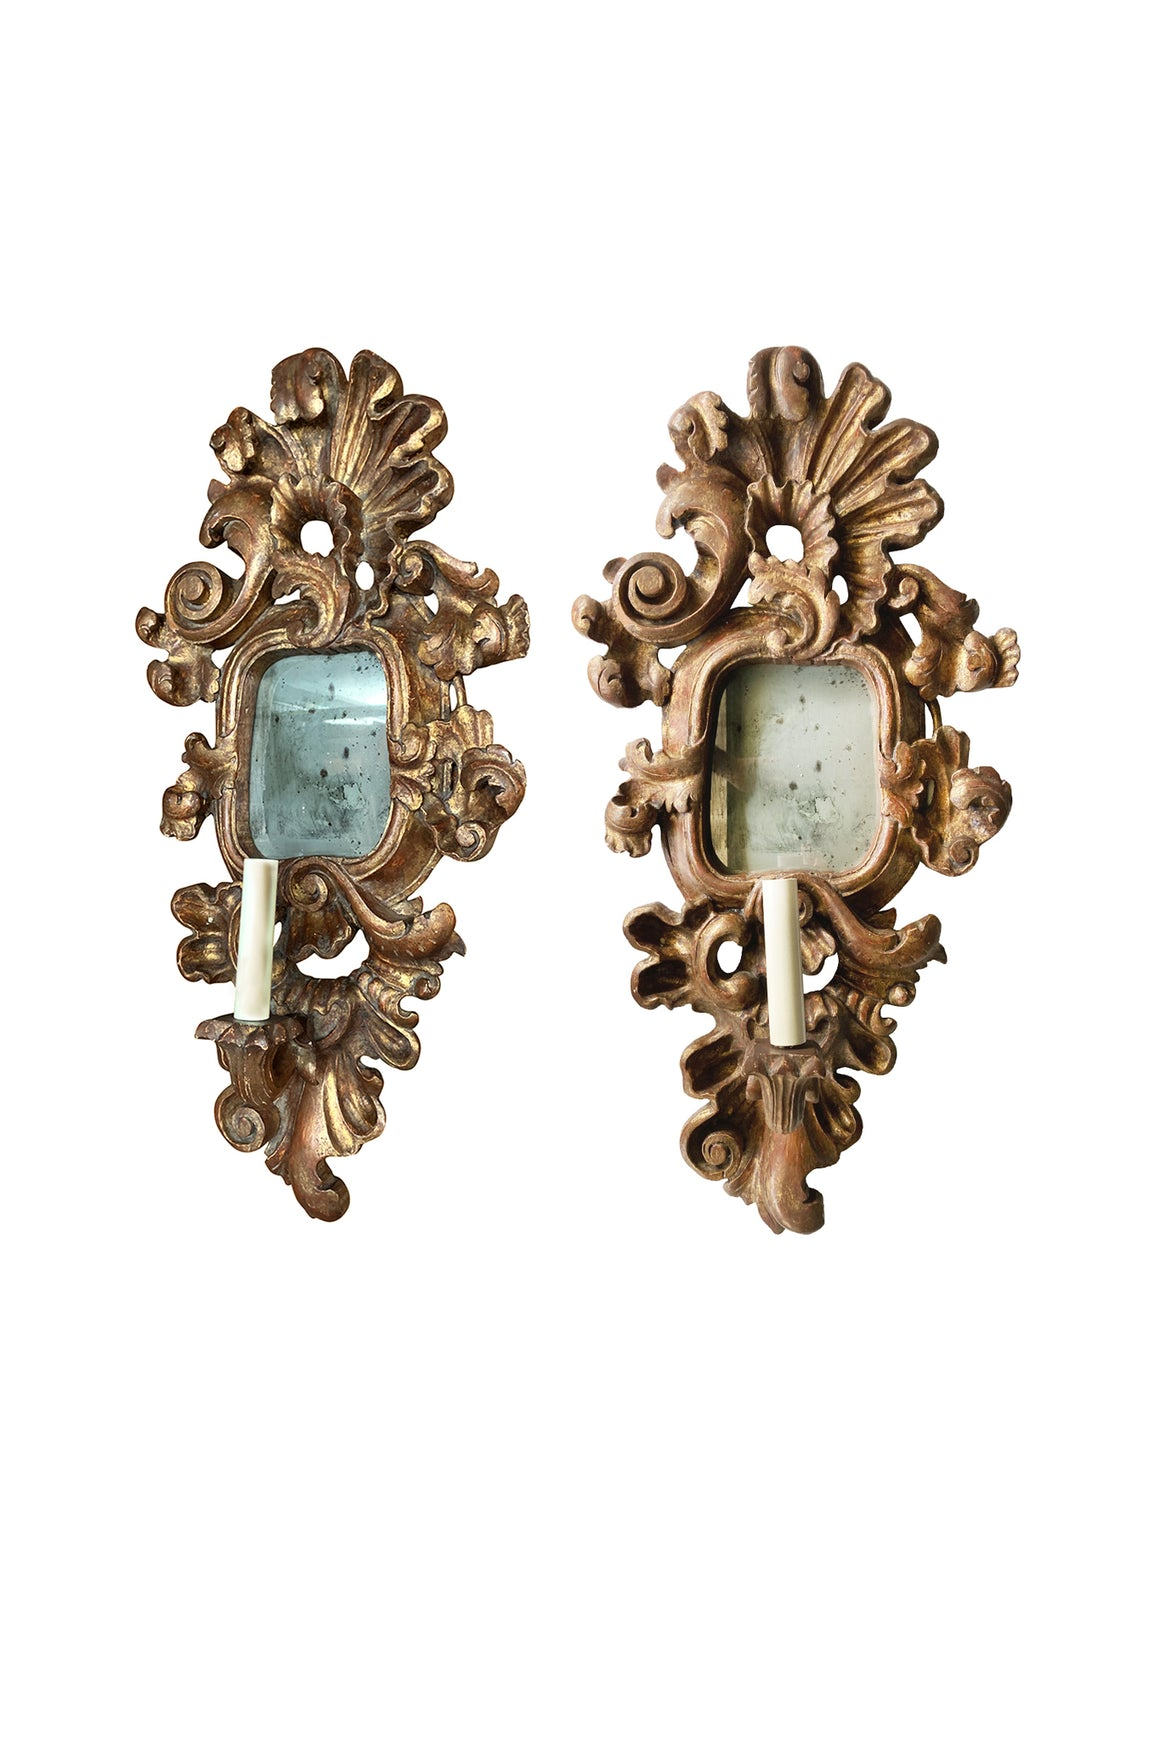 Pair of Antique Giltwood Mirror Sconces